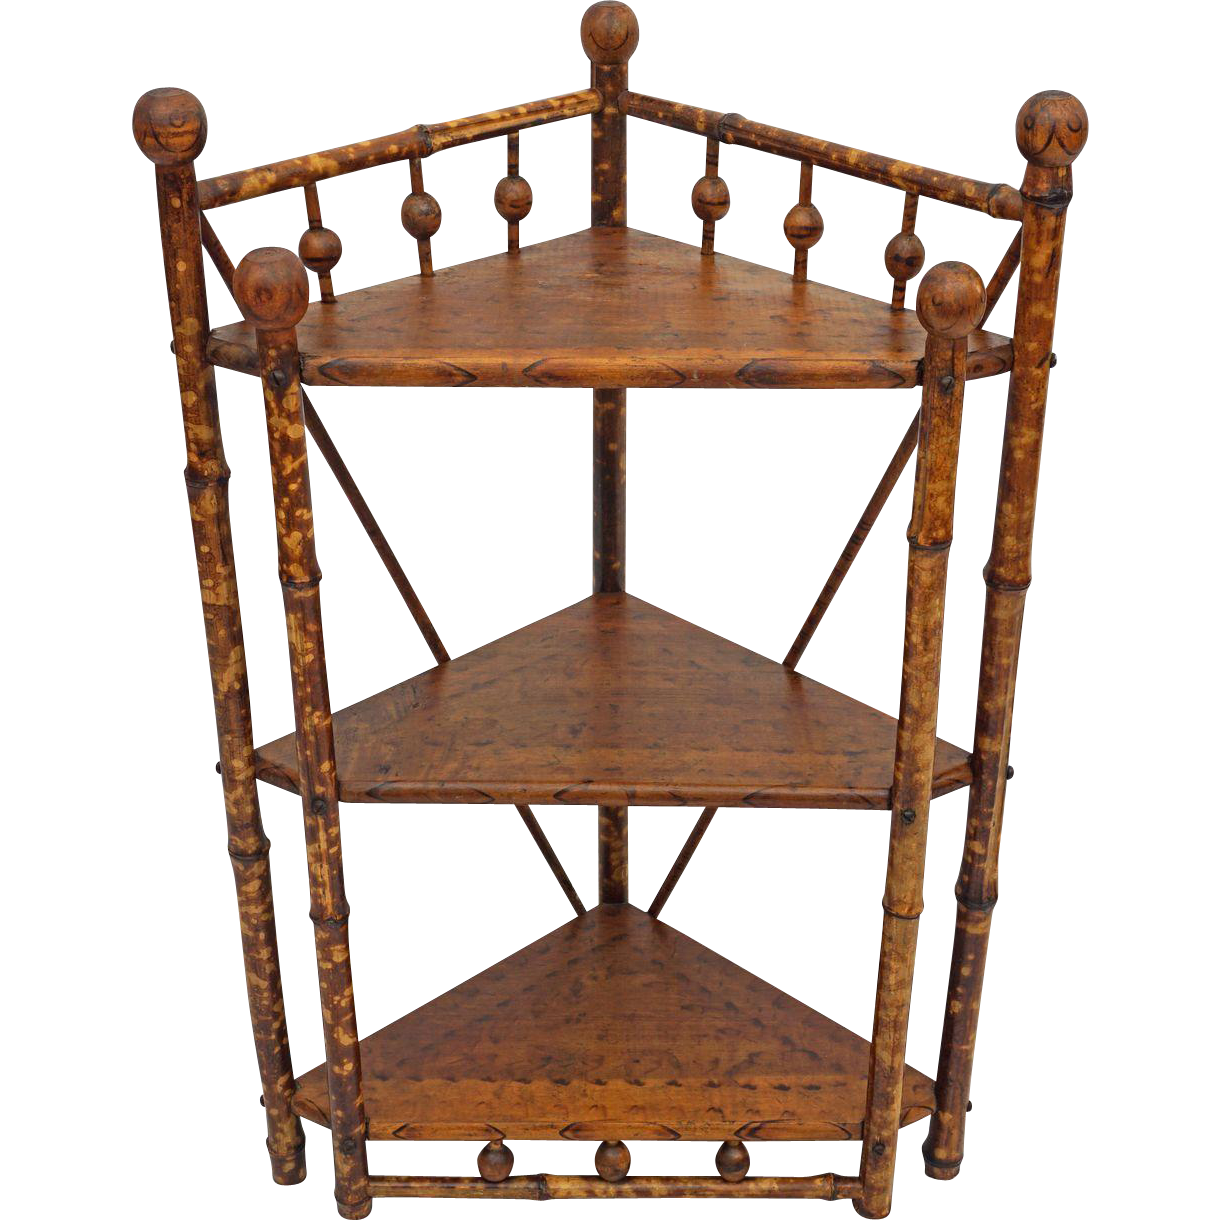 British Colonial Style Bamboo Stick and Ball Corner Etagere / Stand / Shelves - c. 1900's, England